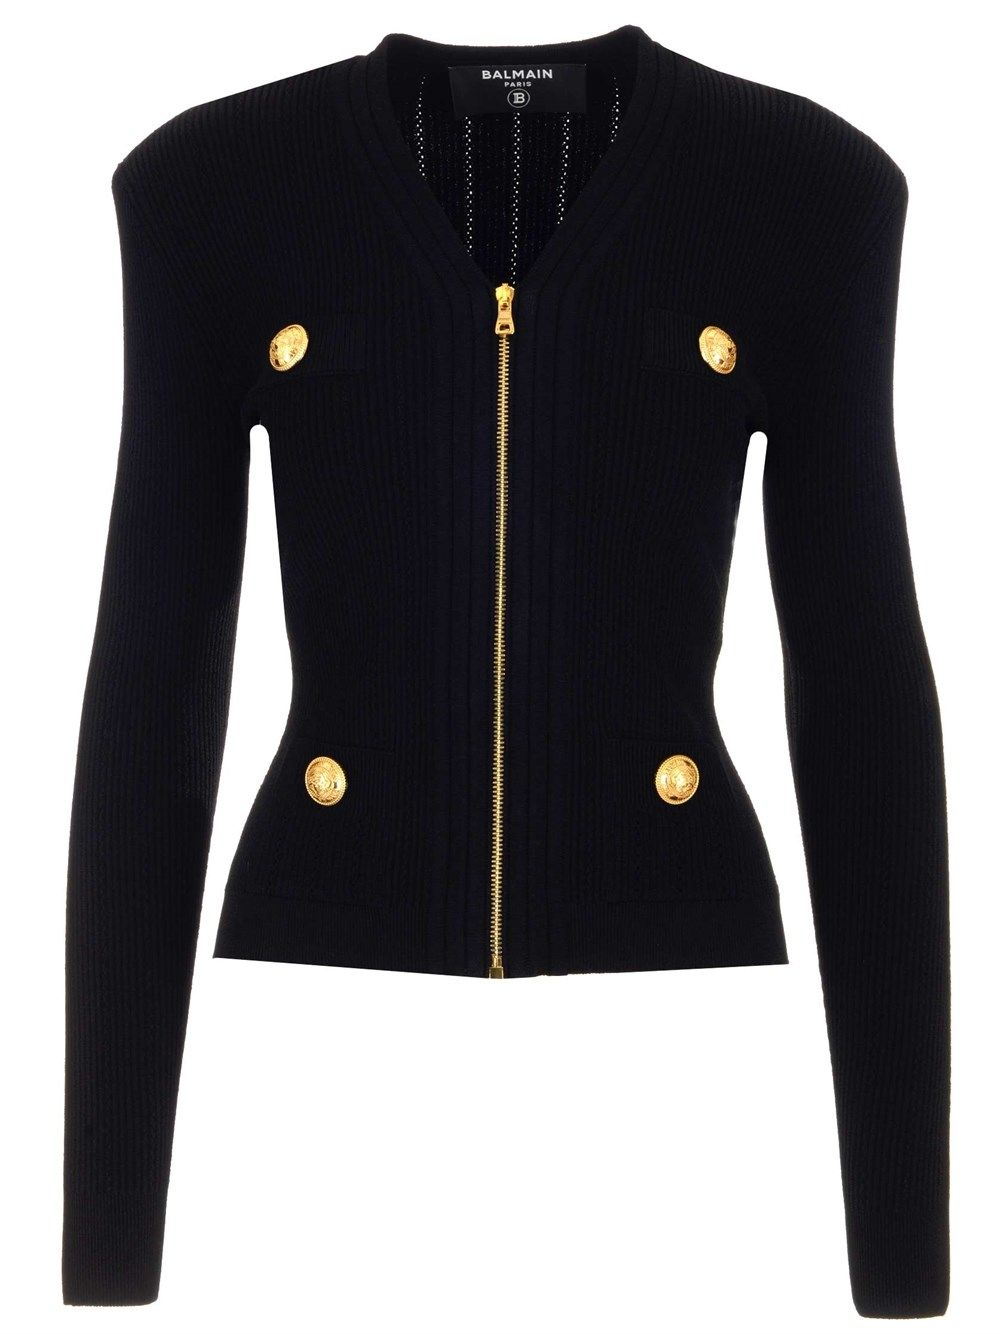 Balmain BALMAIN WOMEN'S VF0SK030K2110PA BLACK OTHER MATERIALS JACKET